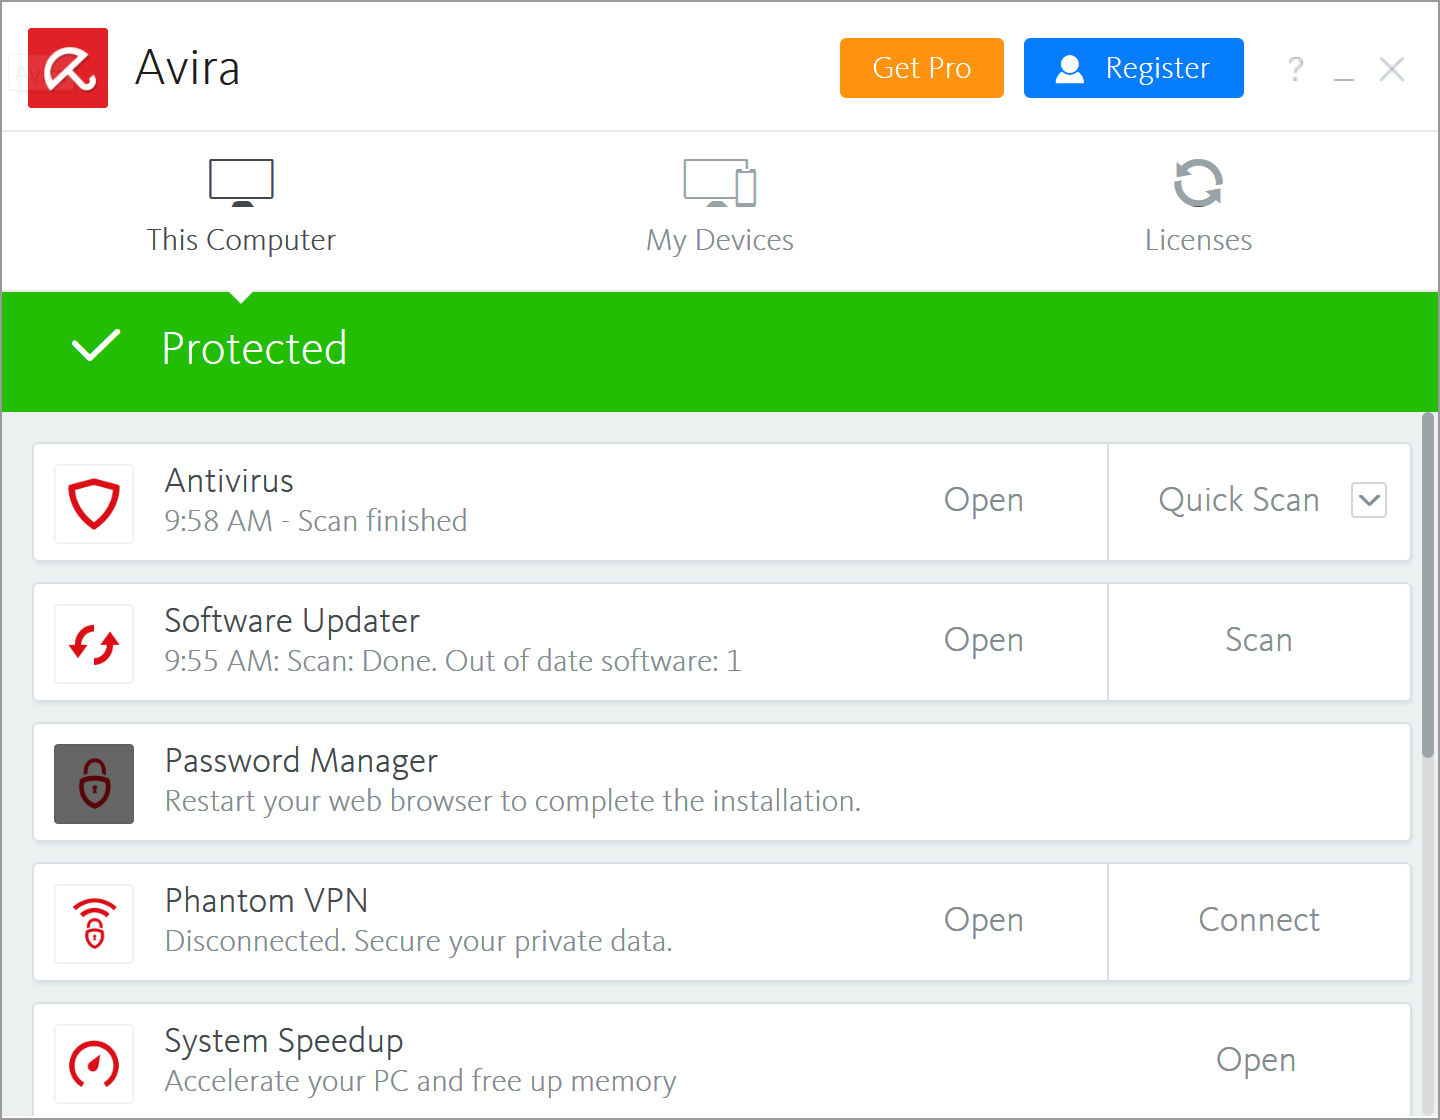 Avira Internet Security Suite v15.0.34.17 free download - Software reviews, downloads, news ...